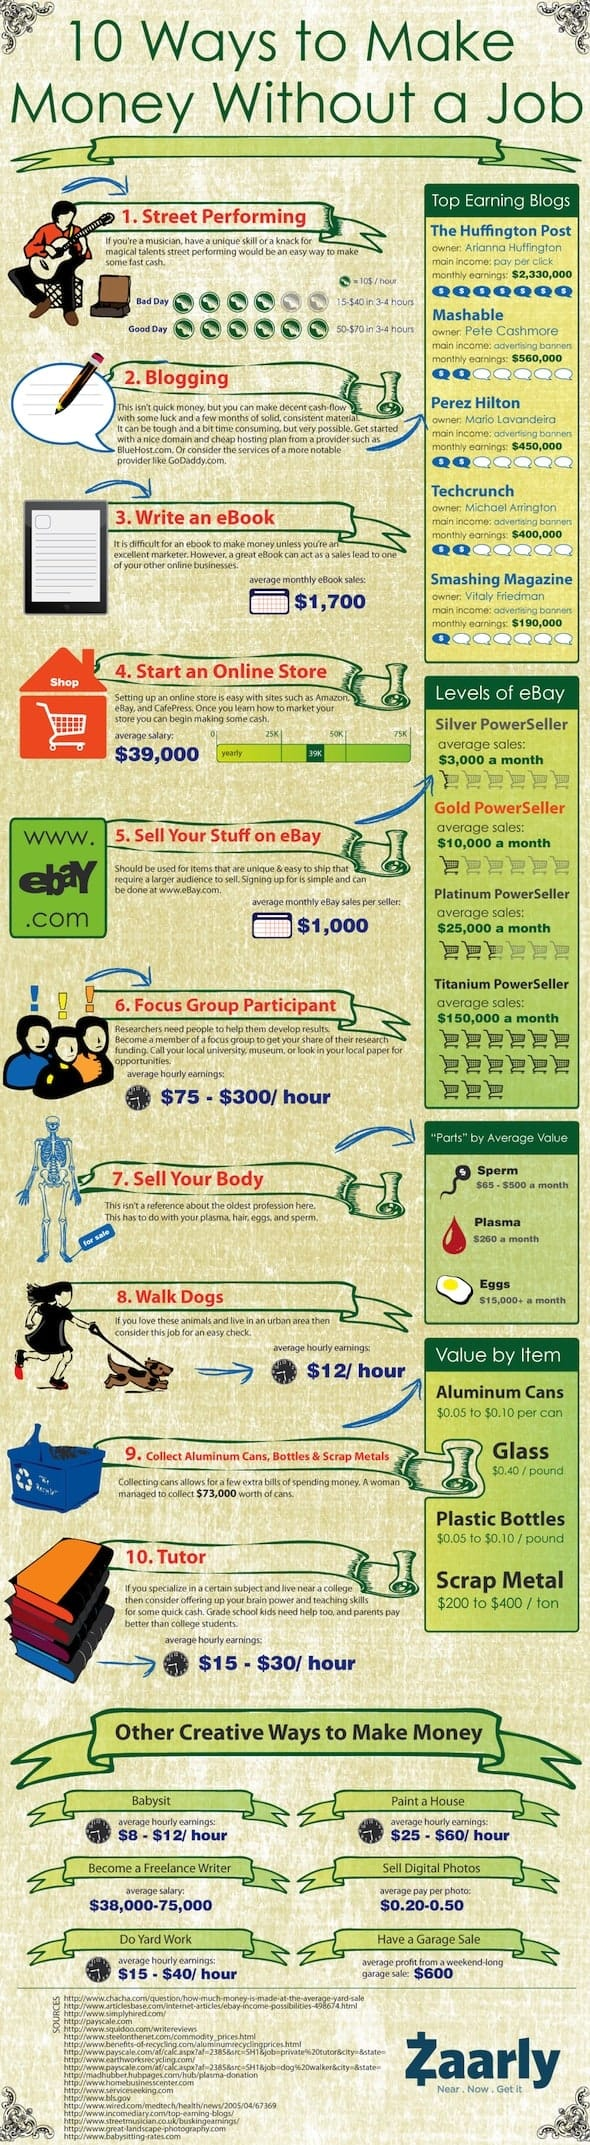 10 Ways to Make Money Without a Job Infographic